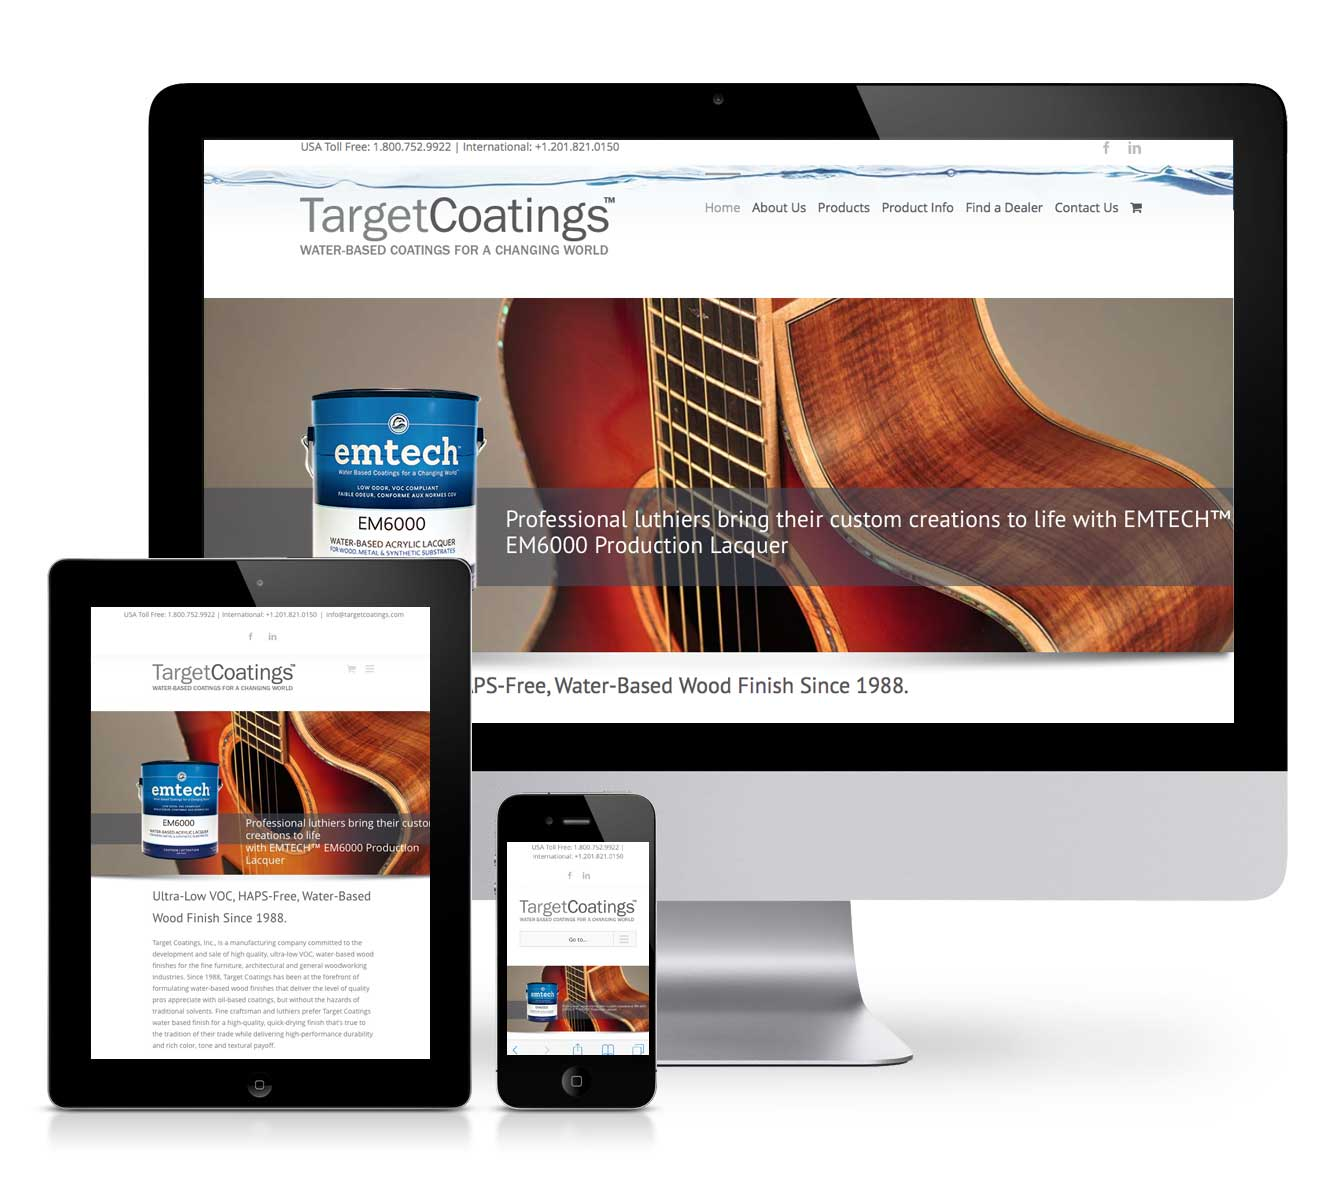 TargetCoatings.com